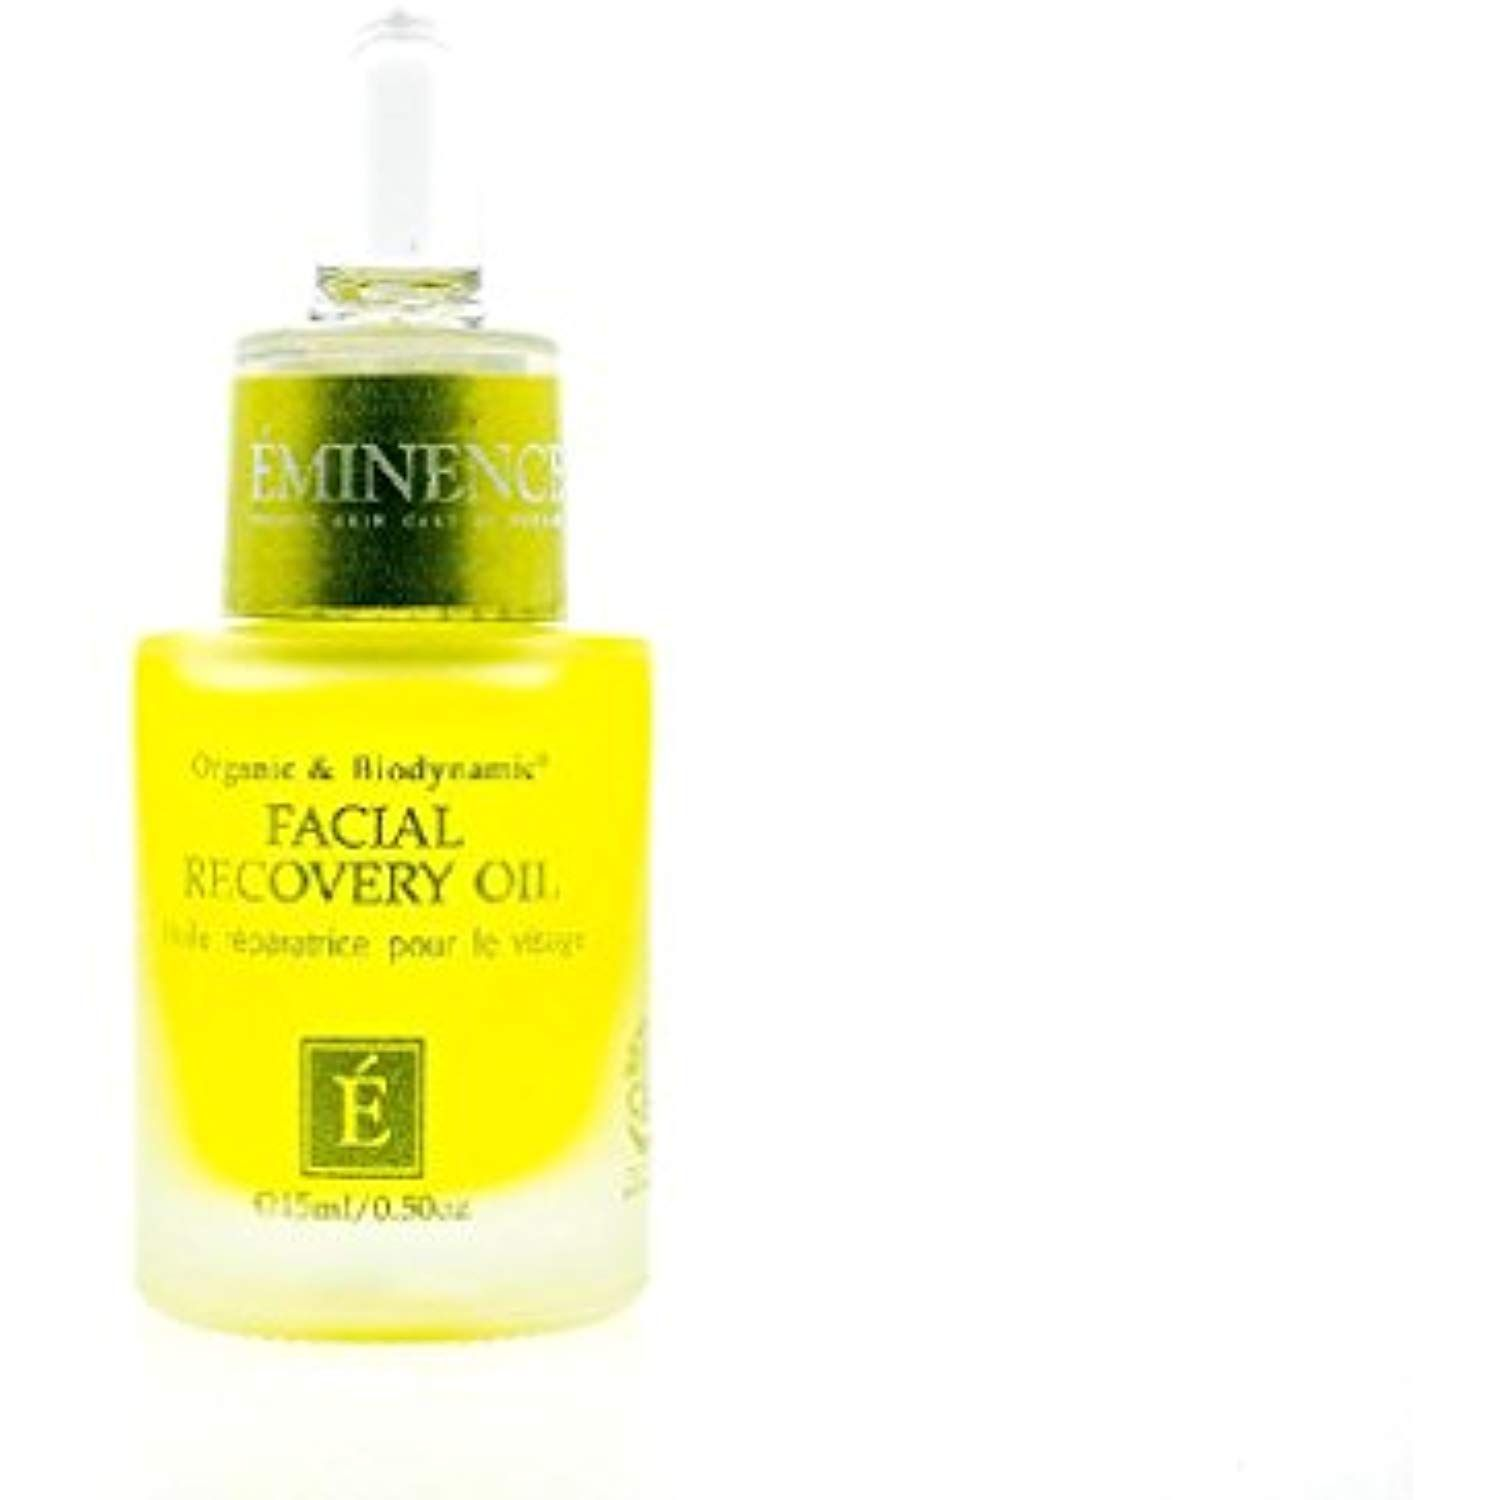 Eminence Organic Skincare Facial Recovery Oil 0 5 Ounce Click